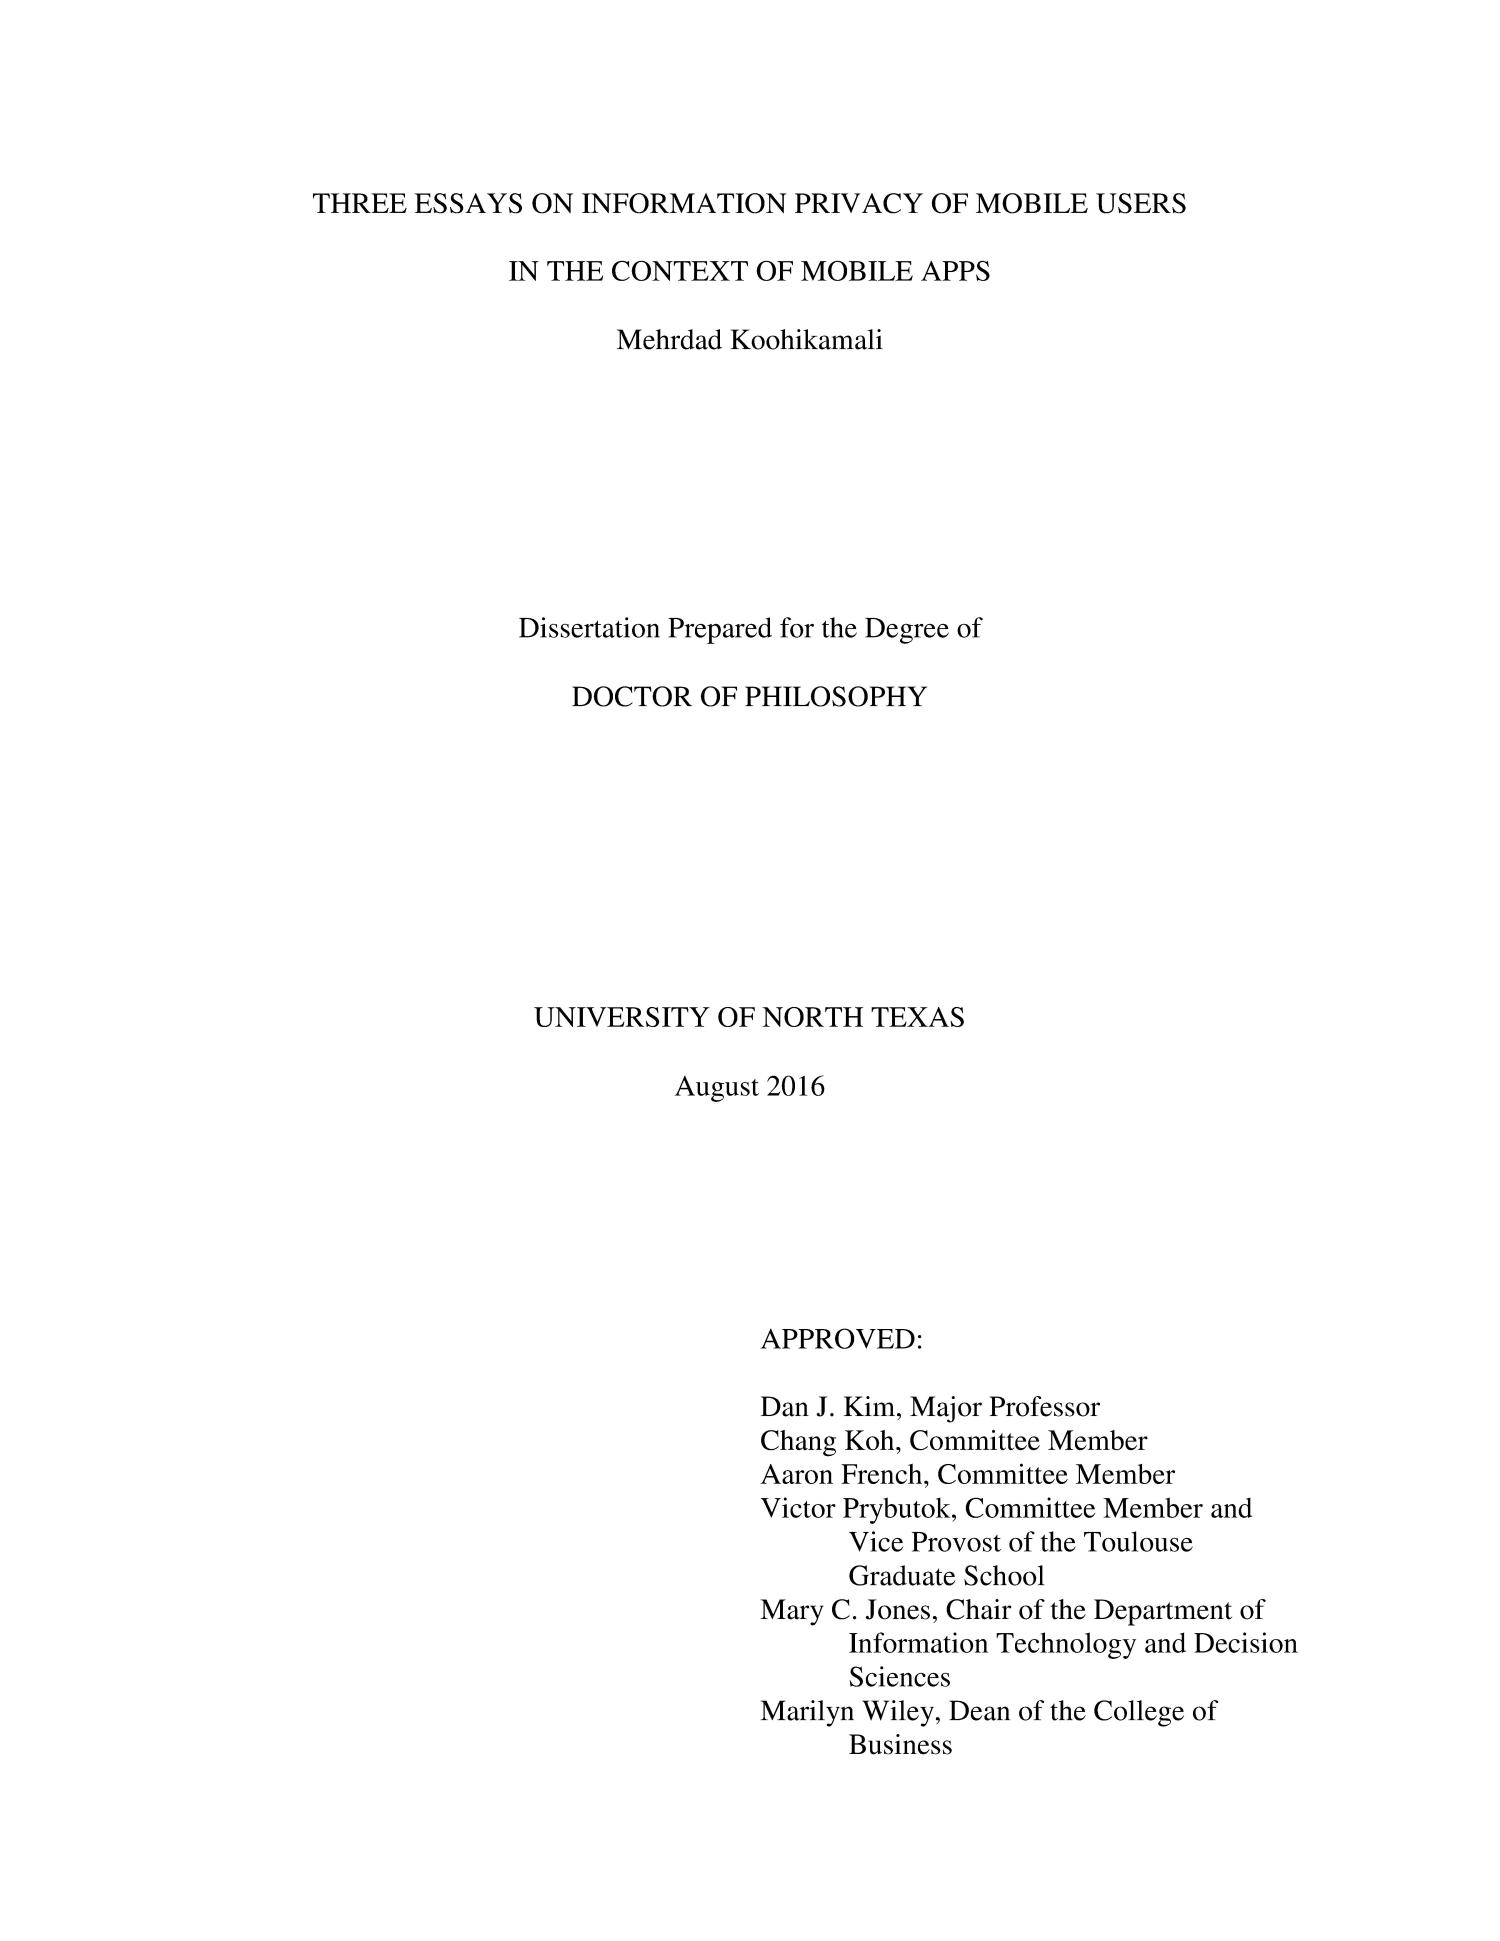 Three Essays On Information Privacy Of Mobile Users In The Context  Three Essays On Information Privacy Of Mobile Users In The Context Of  Mobile Apps  Digital Library Narrative Essay Thesis Statement Examples also Business Essay Writing Service  Essay In English Literature